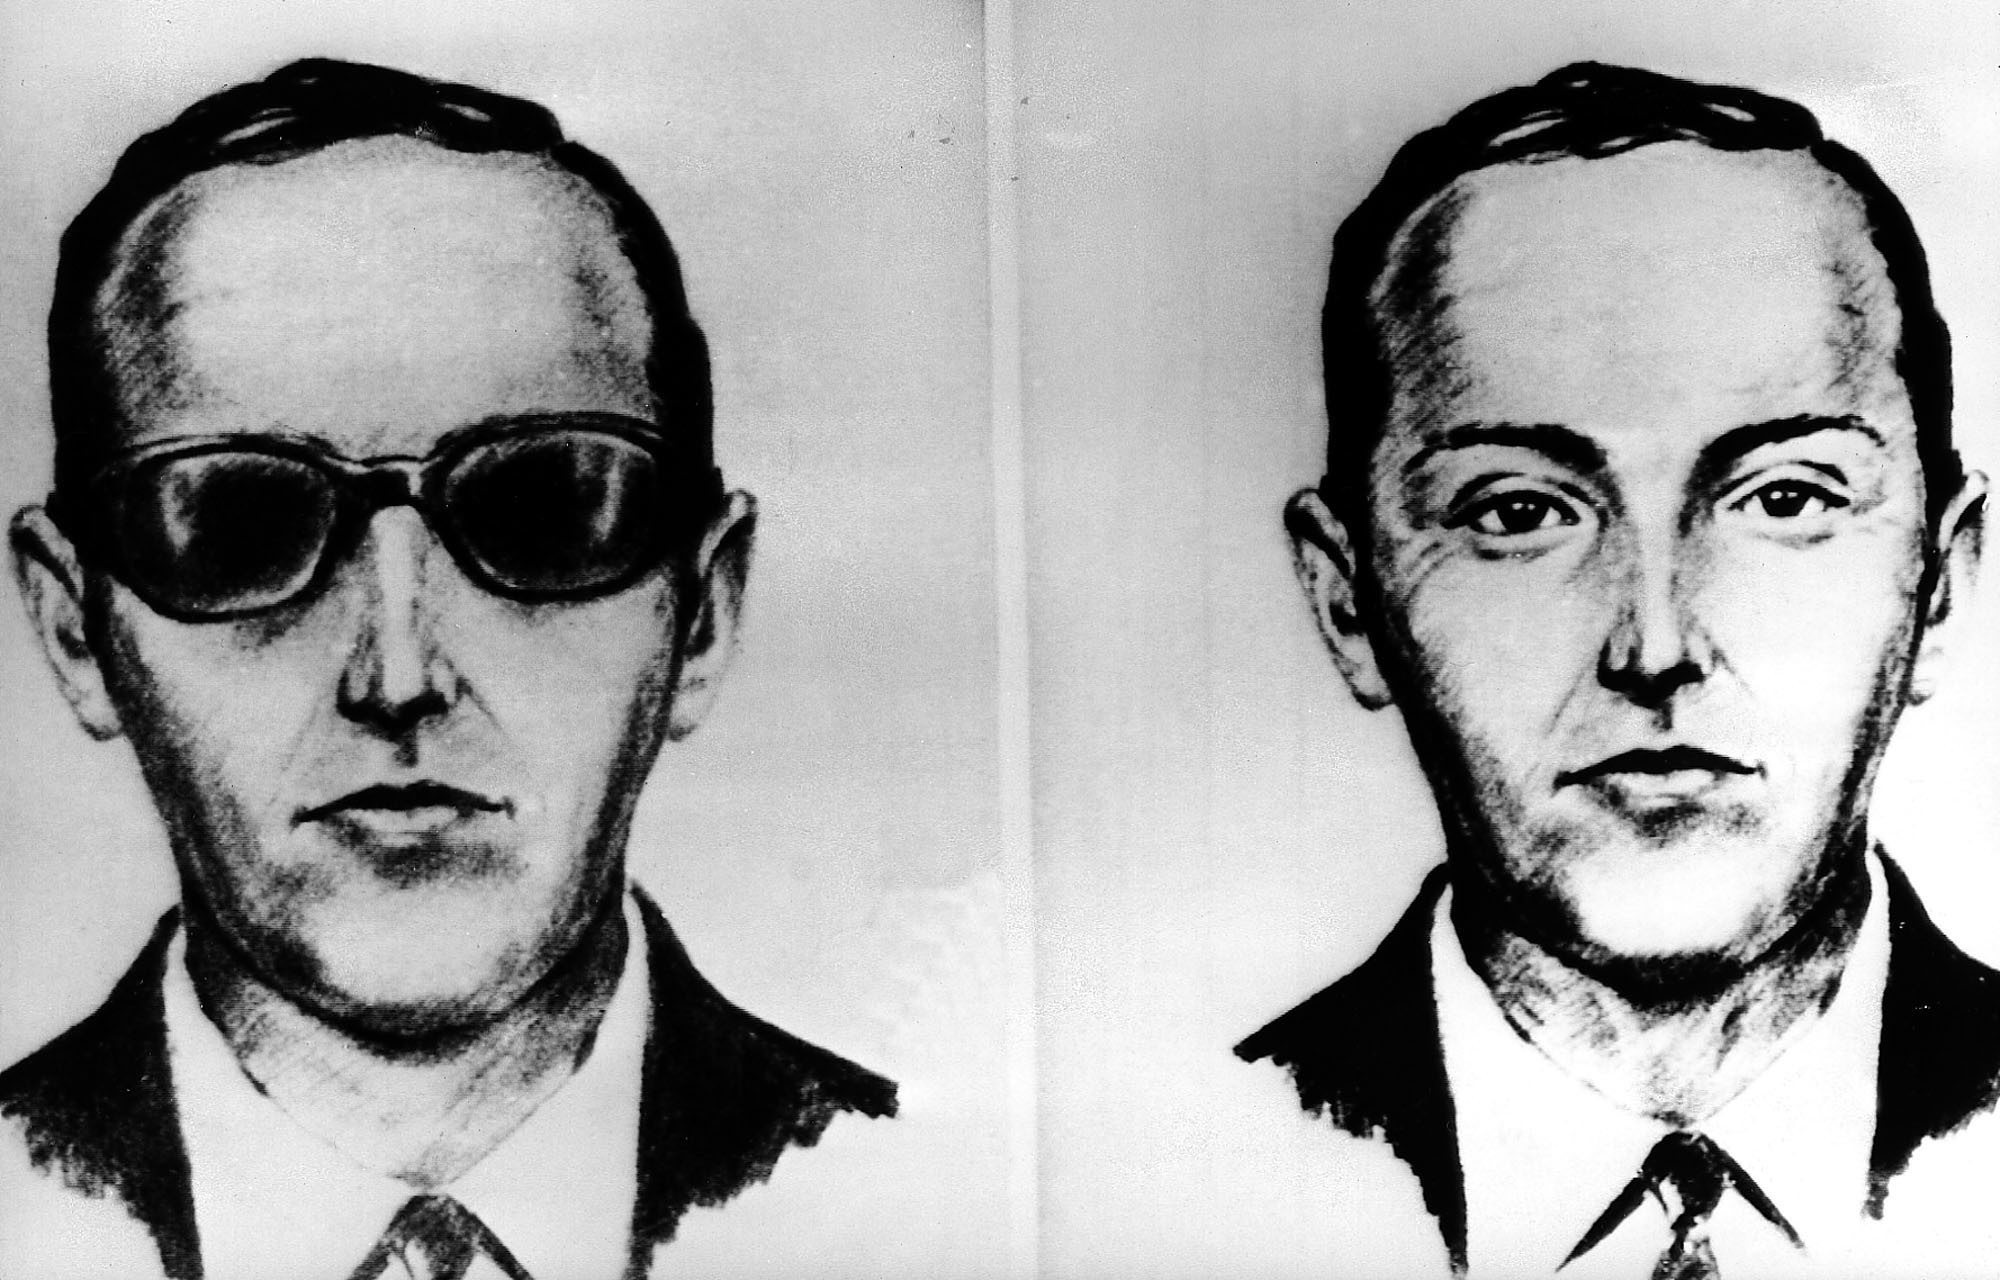 This undated artist' sketch shows the skyjacker known as D.B. Cooper from recollections of the passengers and crew of a Northwest Airlines jet he hijacked between Portland and Seattle on Thanksgiving eve in 1971. (AP)